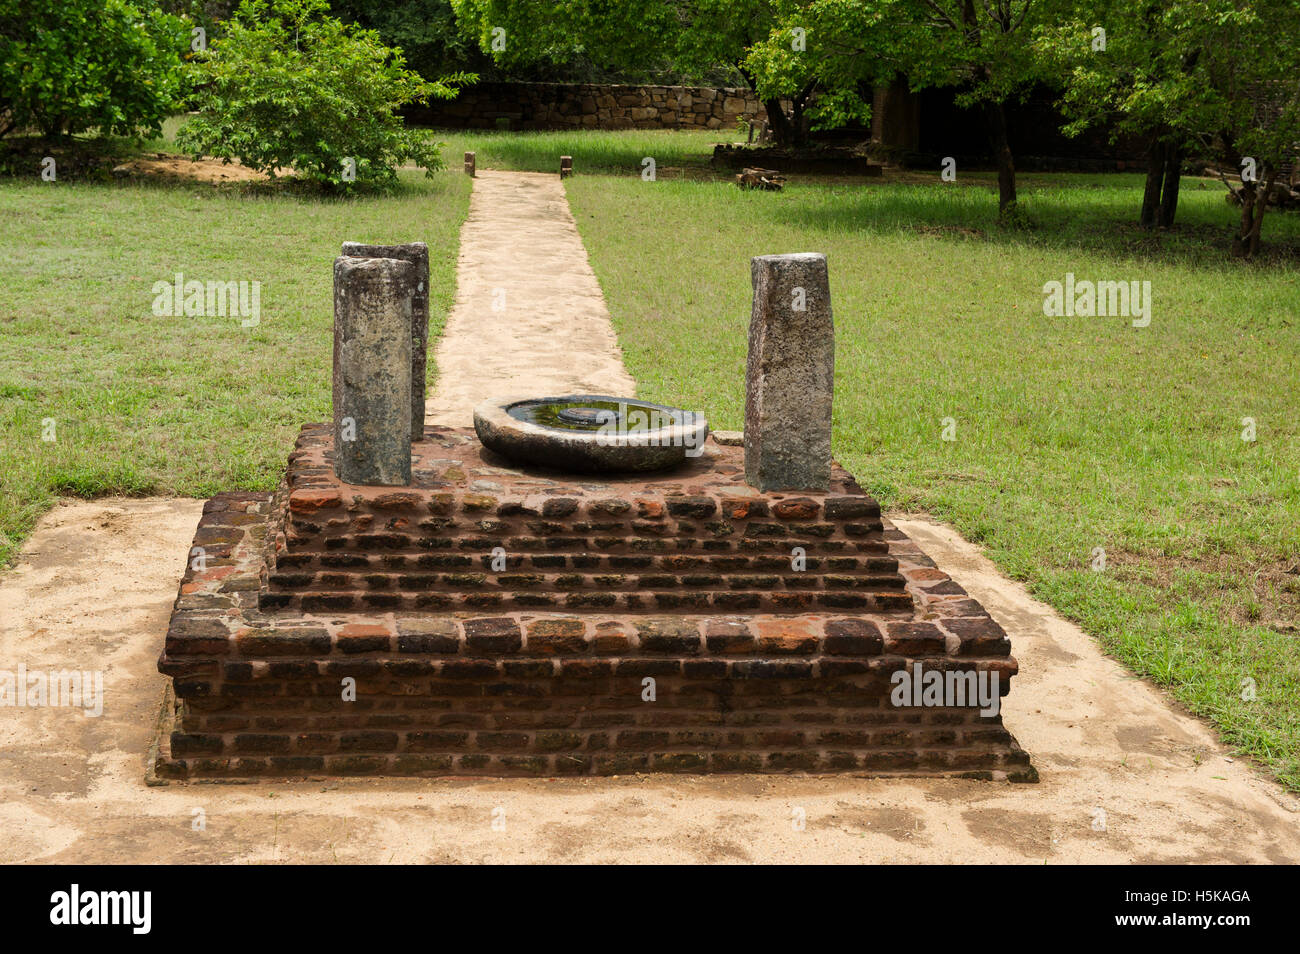 Stone Oil Lamp Stock Photos & Stone Oil Lamp Stock Images - Alamy